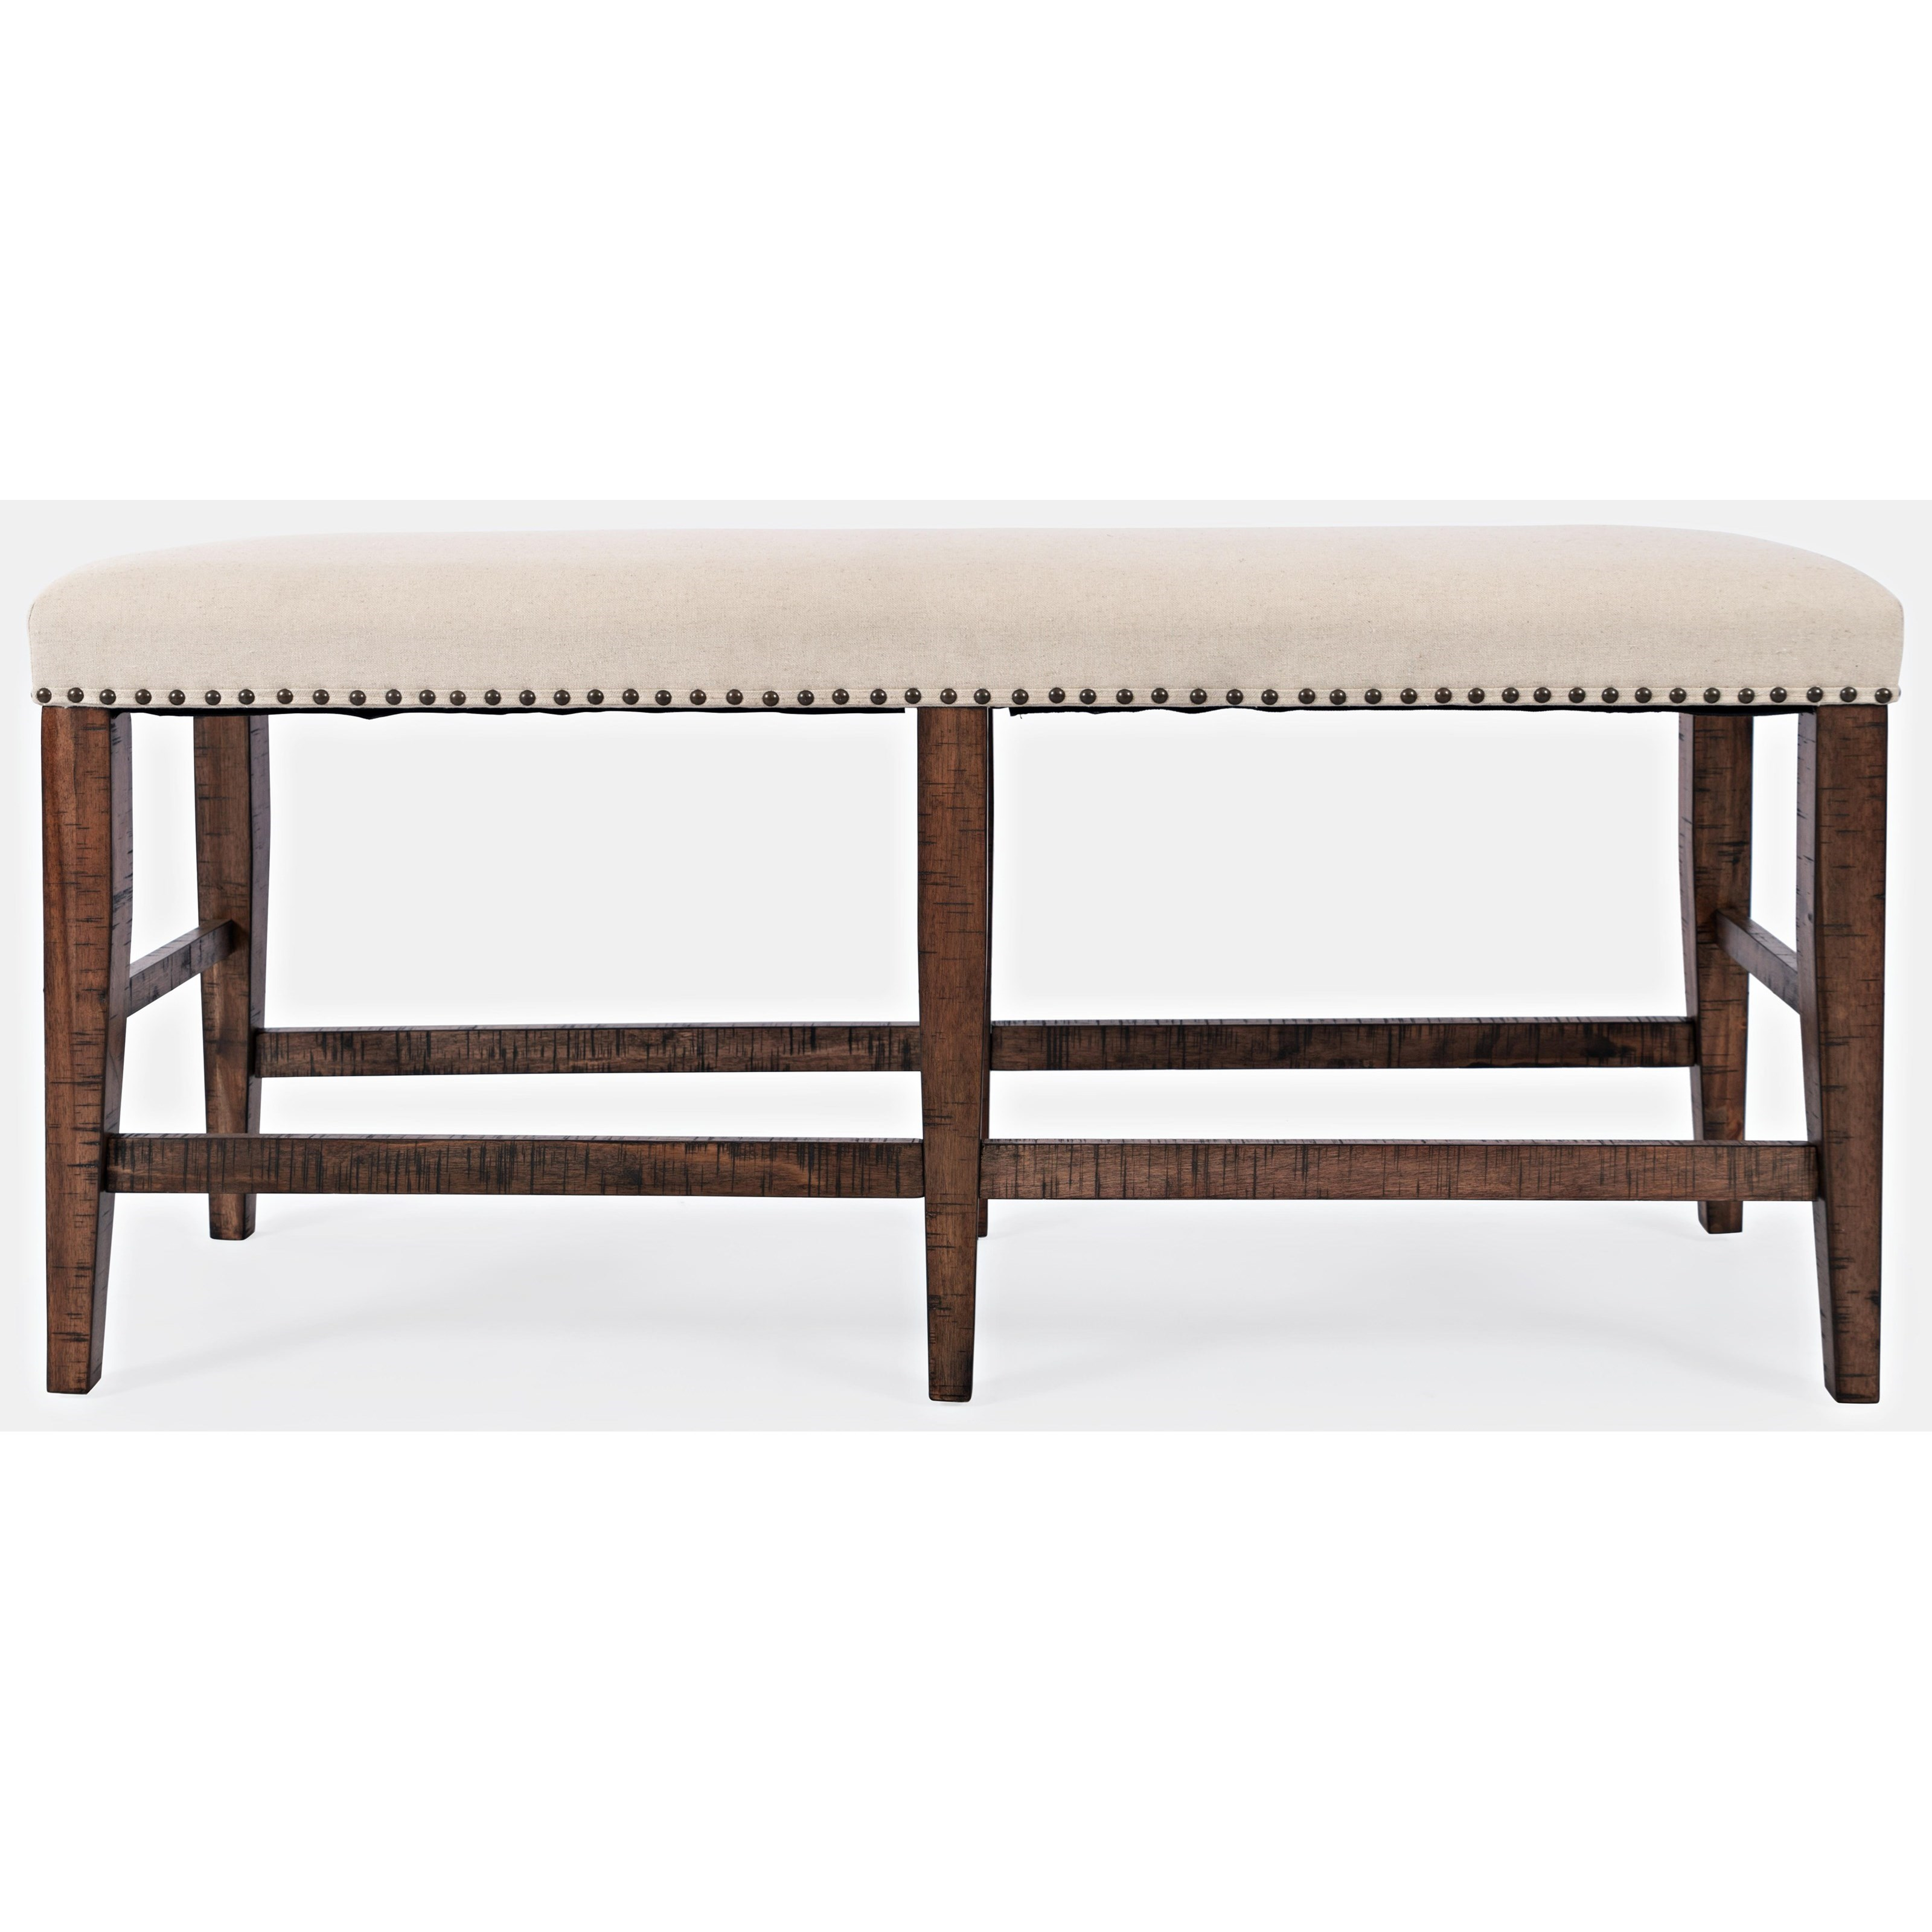 Fairview Backless Counter Bench by Jofran at Jofran